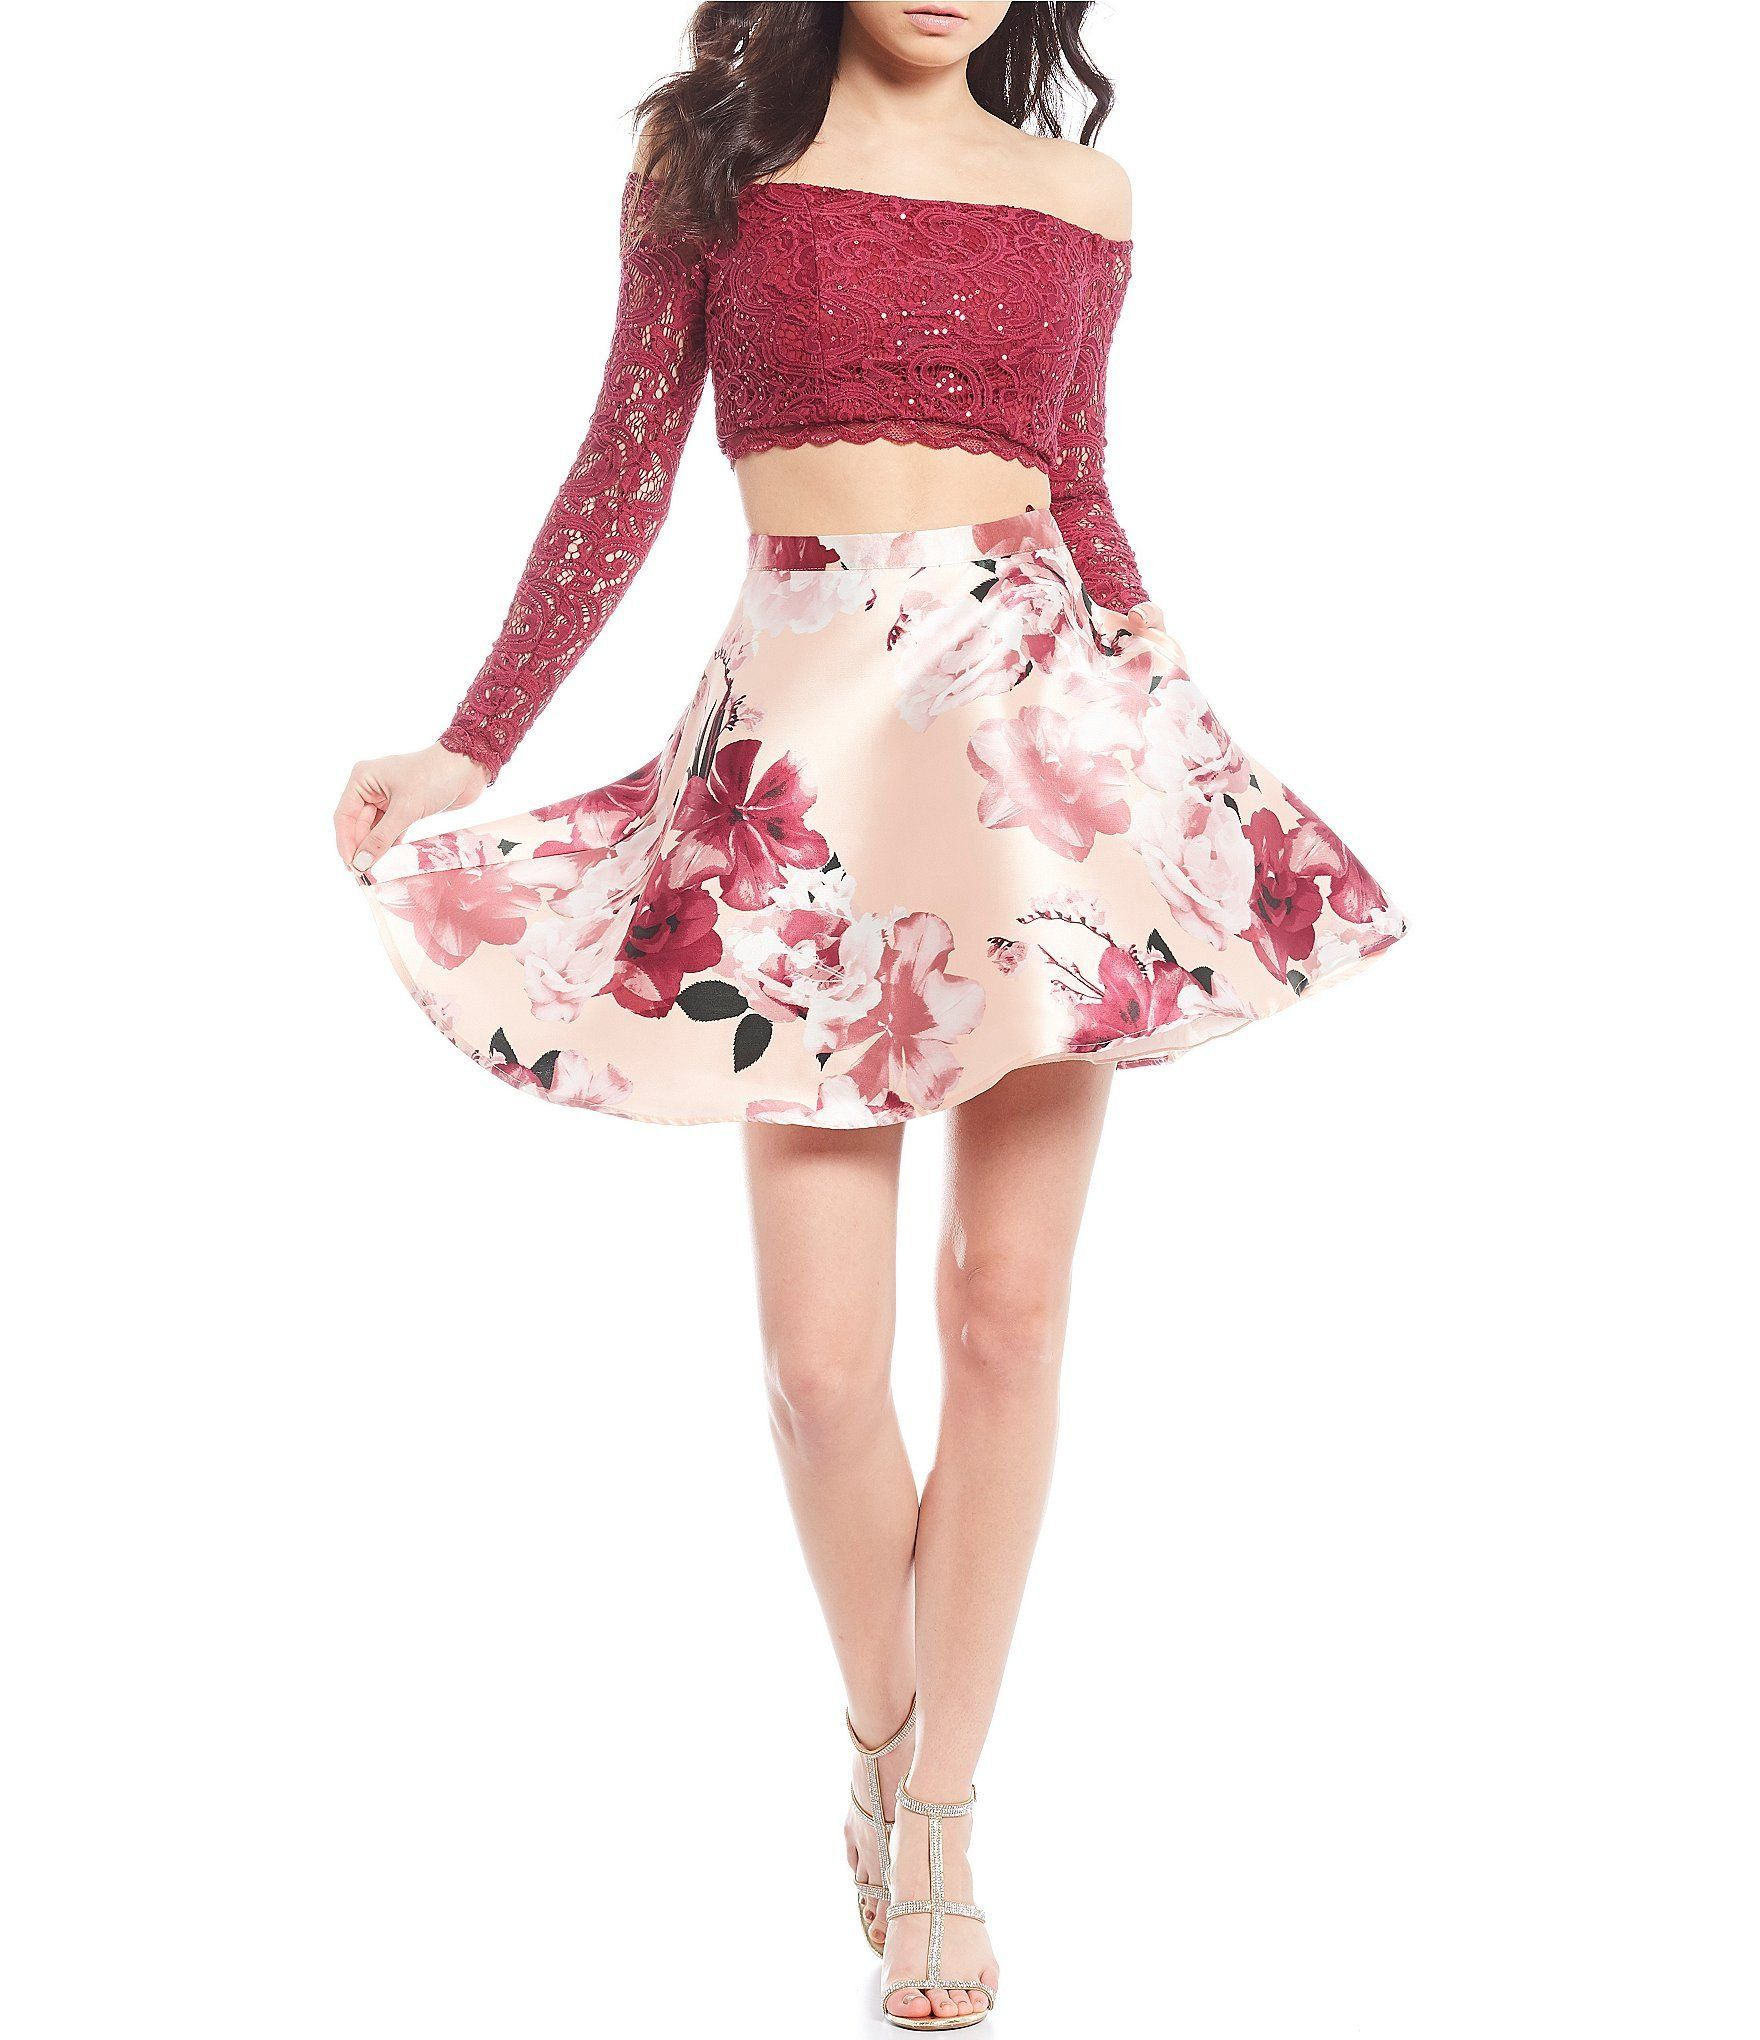 Sequin Hearts Off The Shoulder Lace Top With Floral Skirt Two Piece Dress Barhb Blush 9 1000 Two Piece Dress Piece Dress Cute Prom Dresses [ 2040 x 1760 Pixel ]